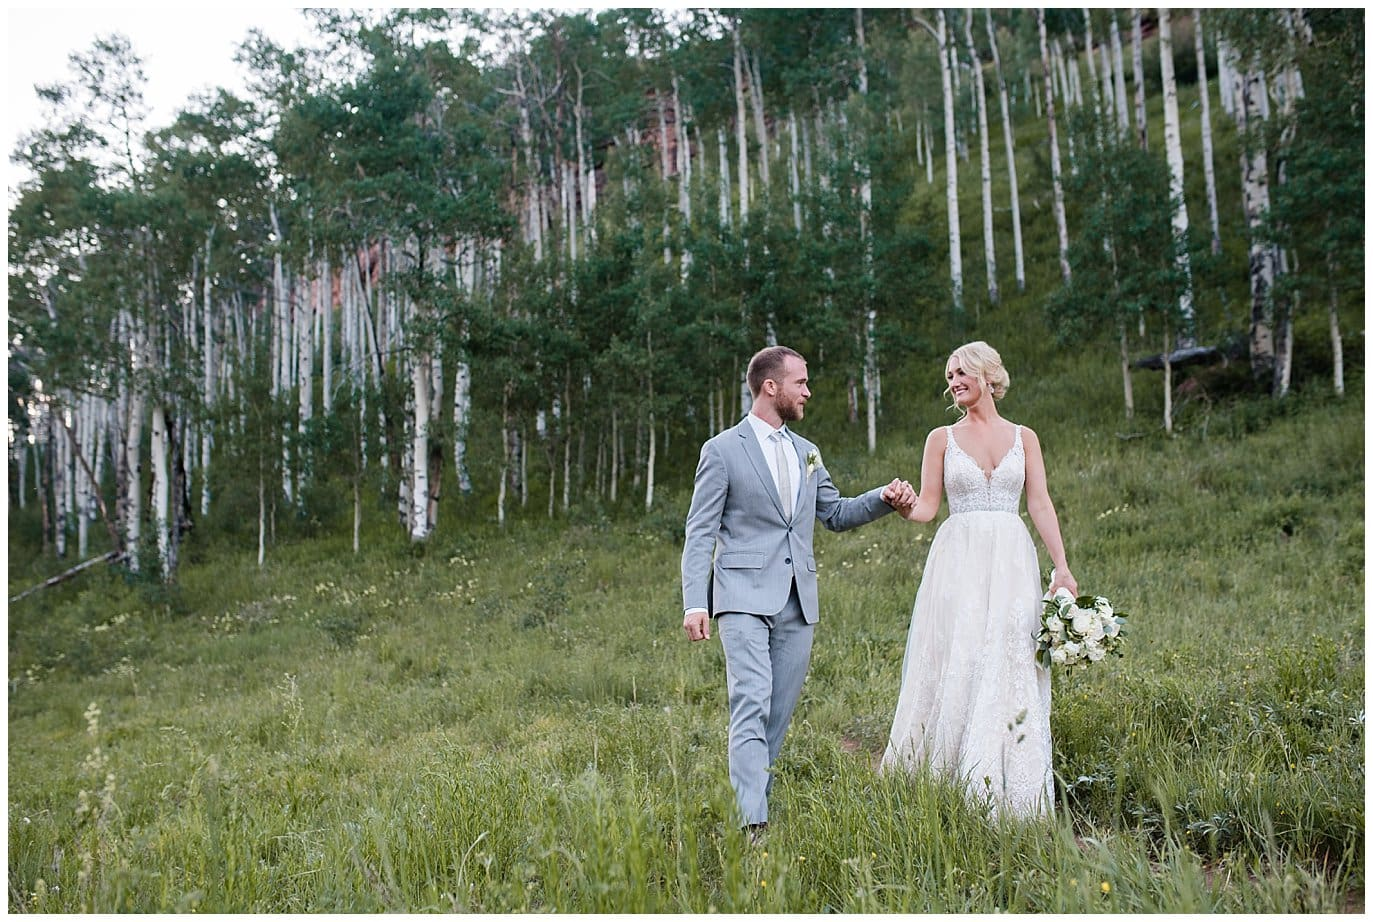 bride and groom in aspens at Piney River Ranch wedding by Beaver Creek wedding photographer Jennie Crate, Photographer